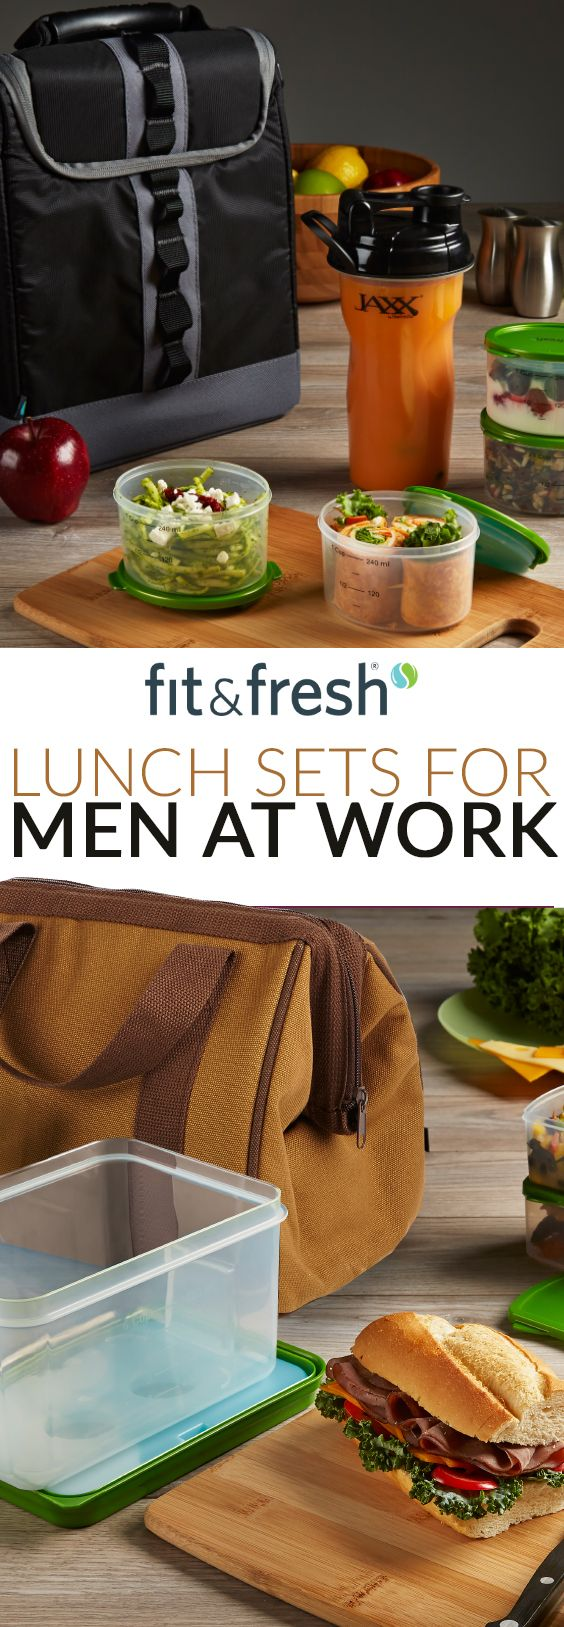 lunch sets for men at work - great gift idea for those hard to shop